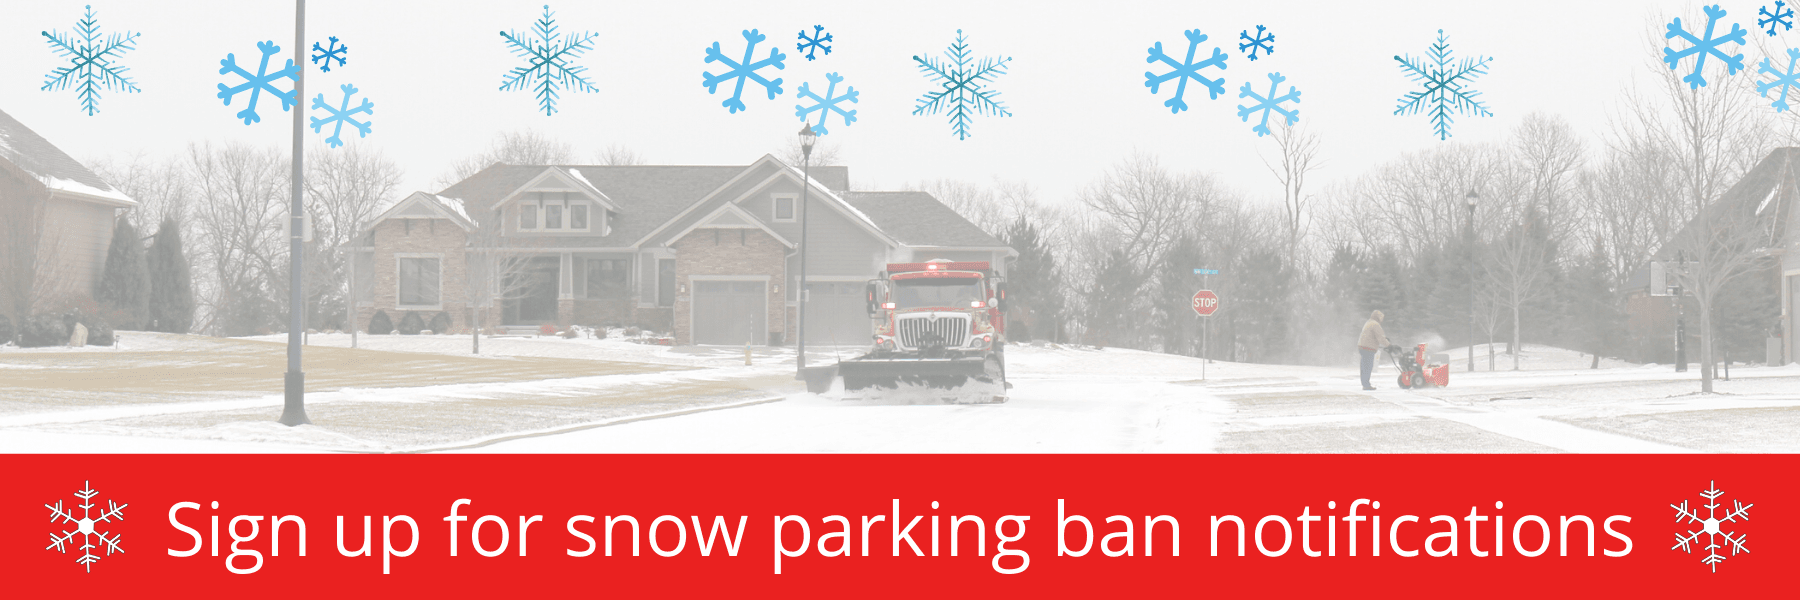 snow parking ban notifications